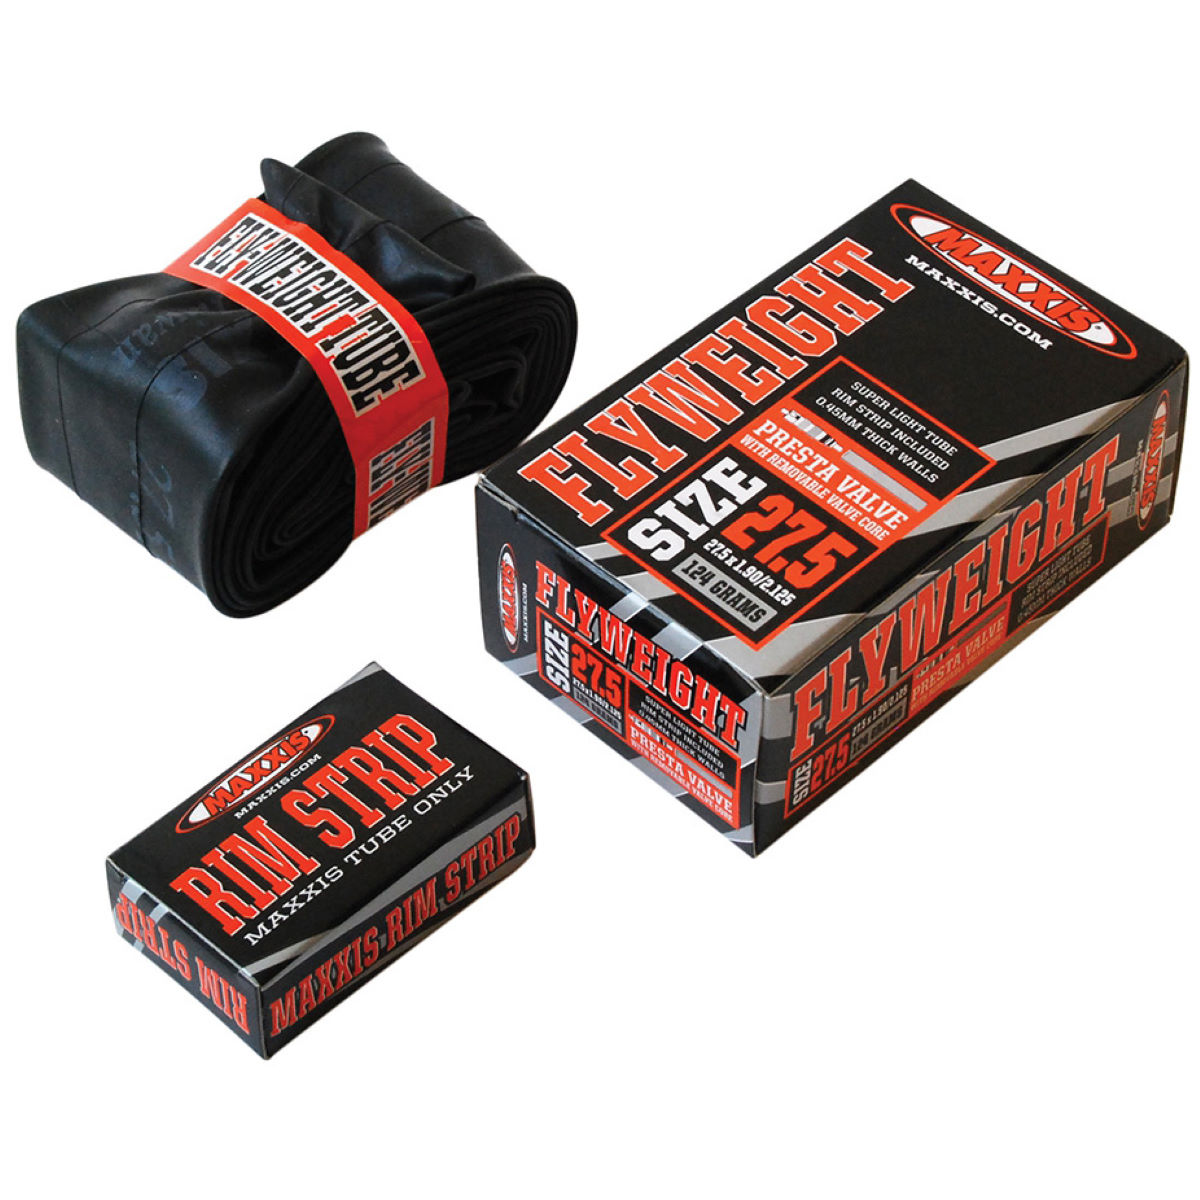 Maxxis Maxxis Flyweight Road Inner Tube   Inner Tubes